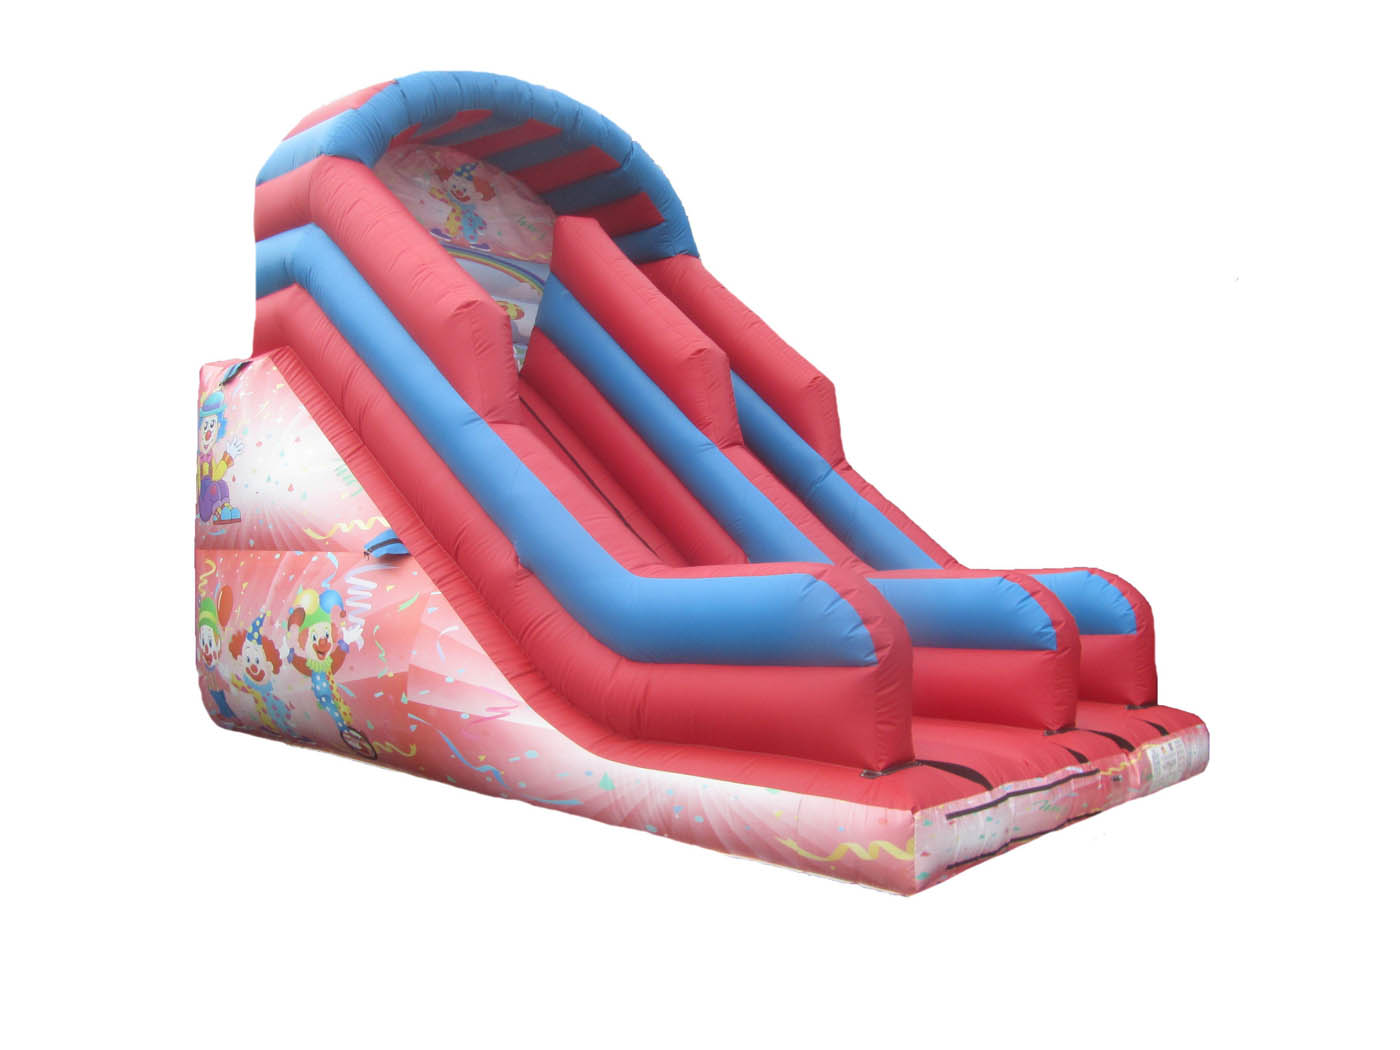 Circus themed inflatable mega slide for sale